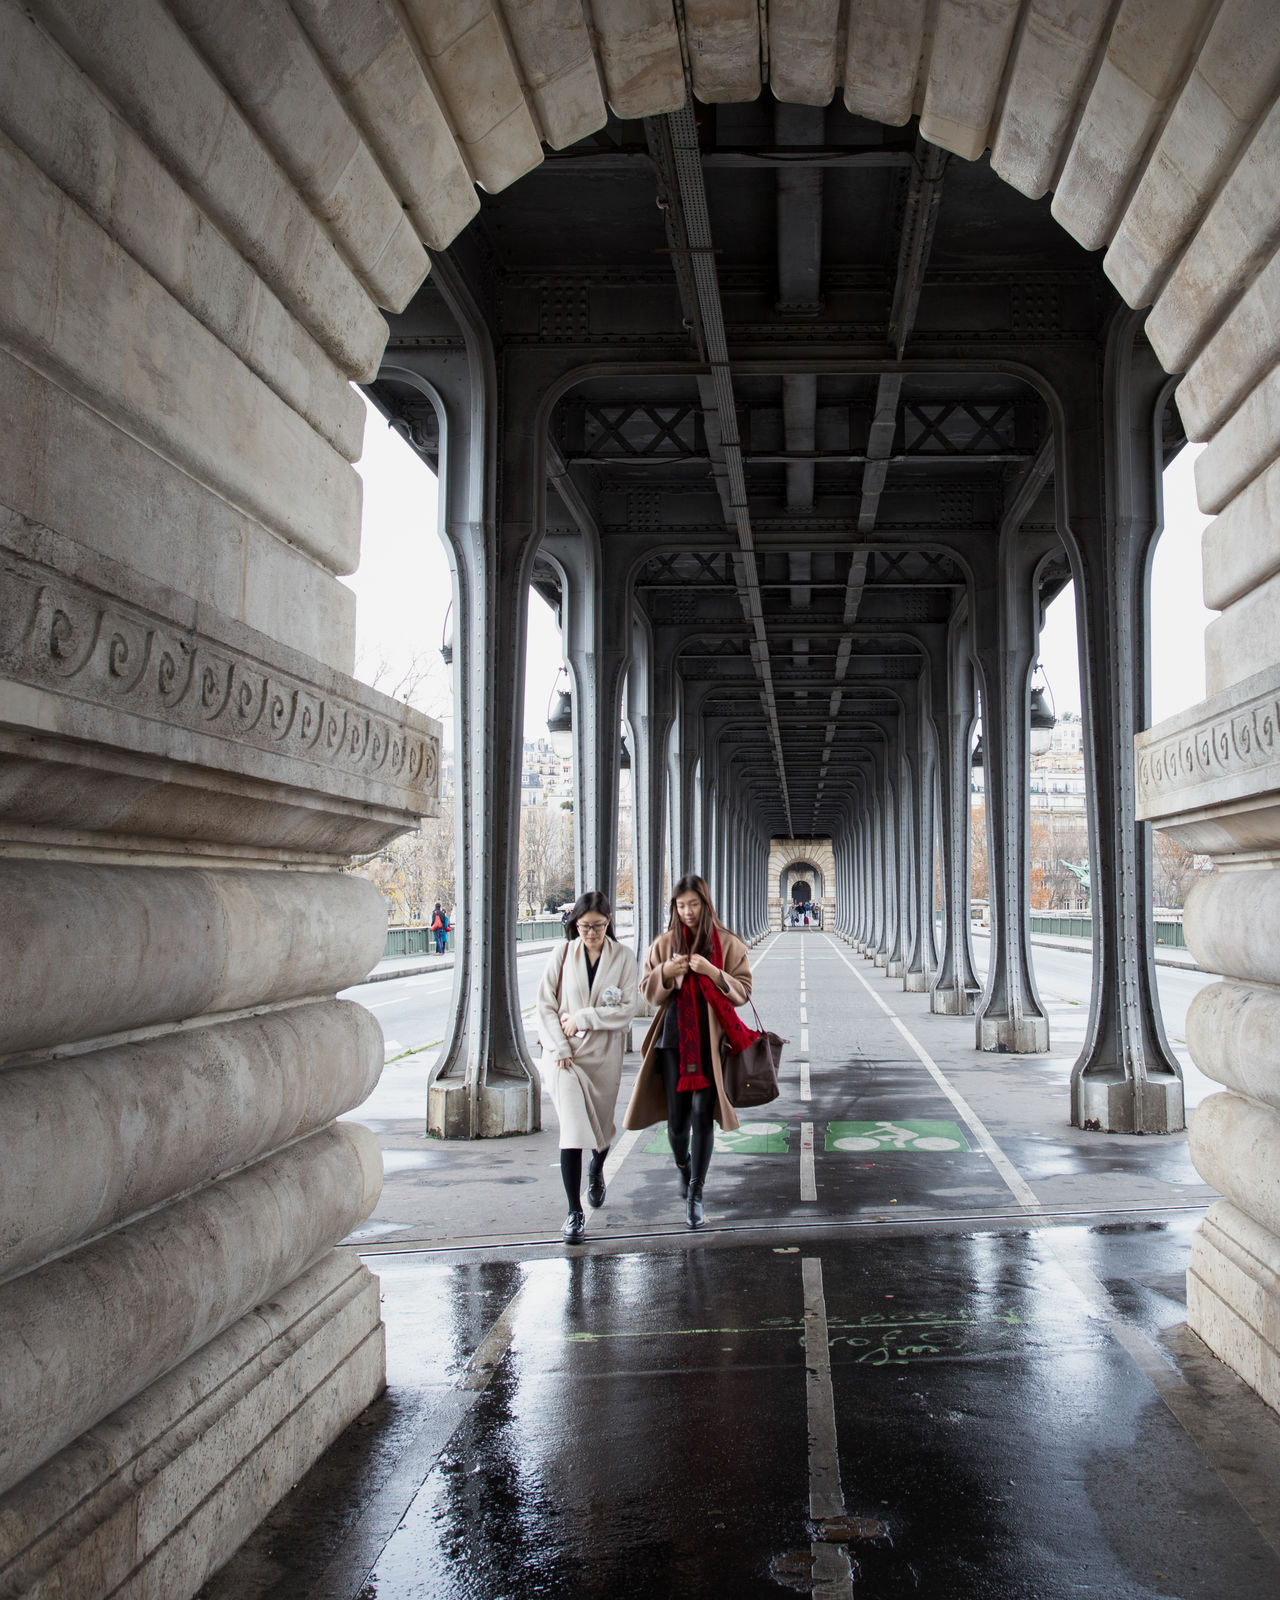 If you had 24 hours in Paris where would you go? Taking Photos Shootermag Architecture Open Edit Colour Paris France People Public Tunnel Bridge City Travel Explore Friends Eyeemphoto EyeEm Best Shots Street Streetphotography